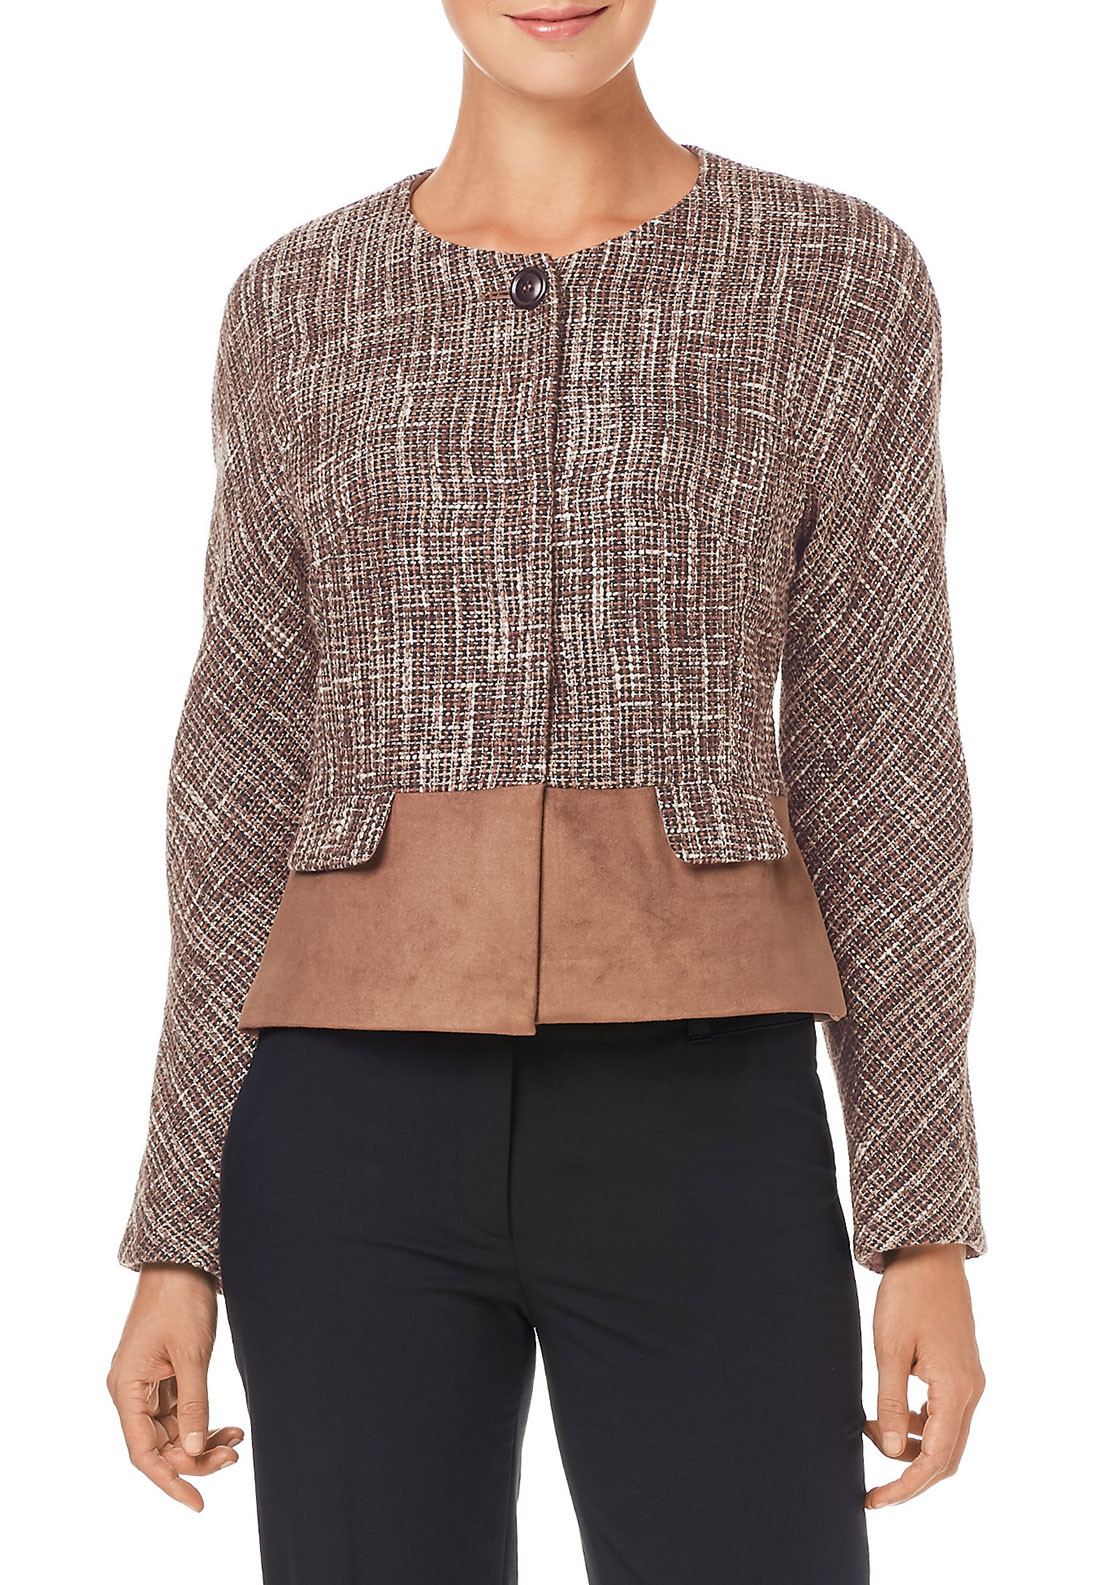 Gerry Weber Suede Trim Tweed Jacket, Brown